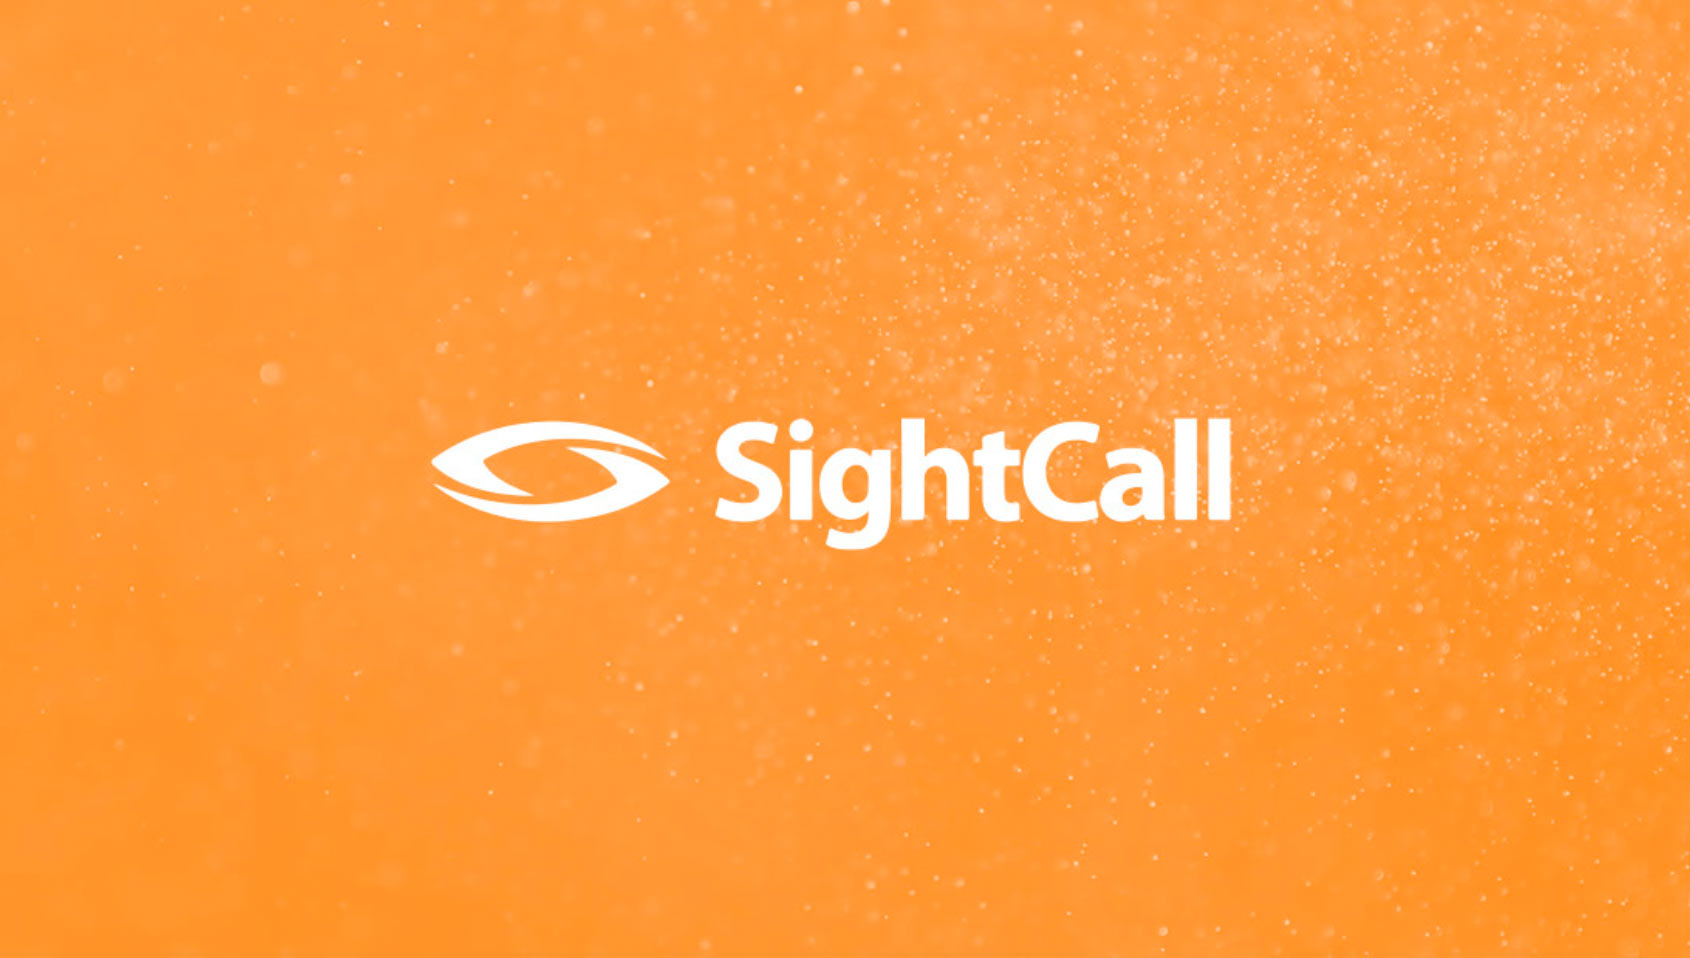 InfraVia invests in SightCall